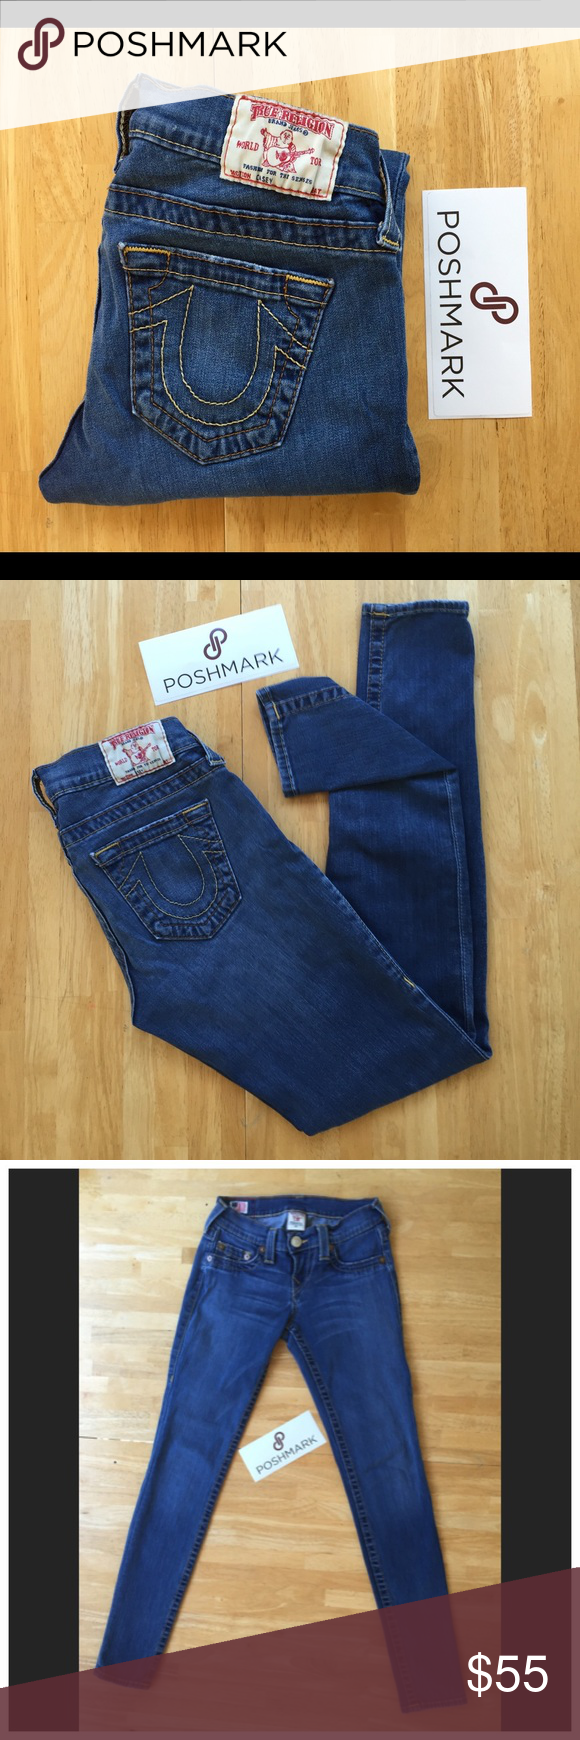 """LISTING. TRUE RELIGION SKINNY JEANS True Religion """"Casey"""" Skinny Jeans. In great condition. Stretchy soft denim. 28 inseam. True Religion Jeans Skinny"""